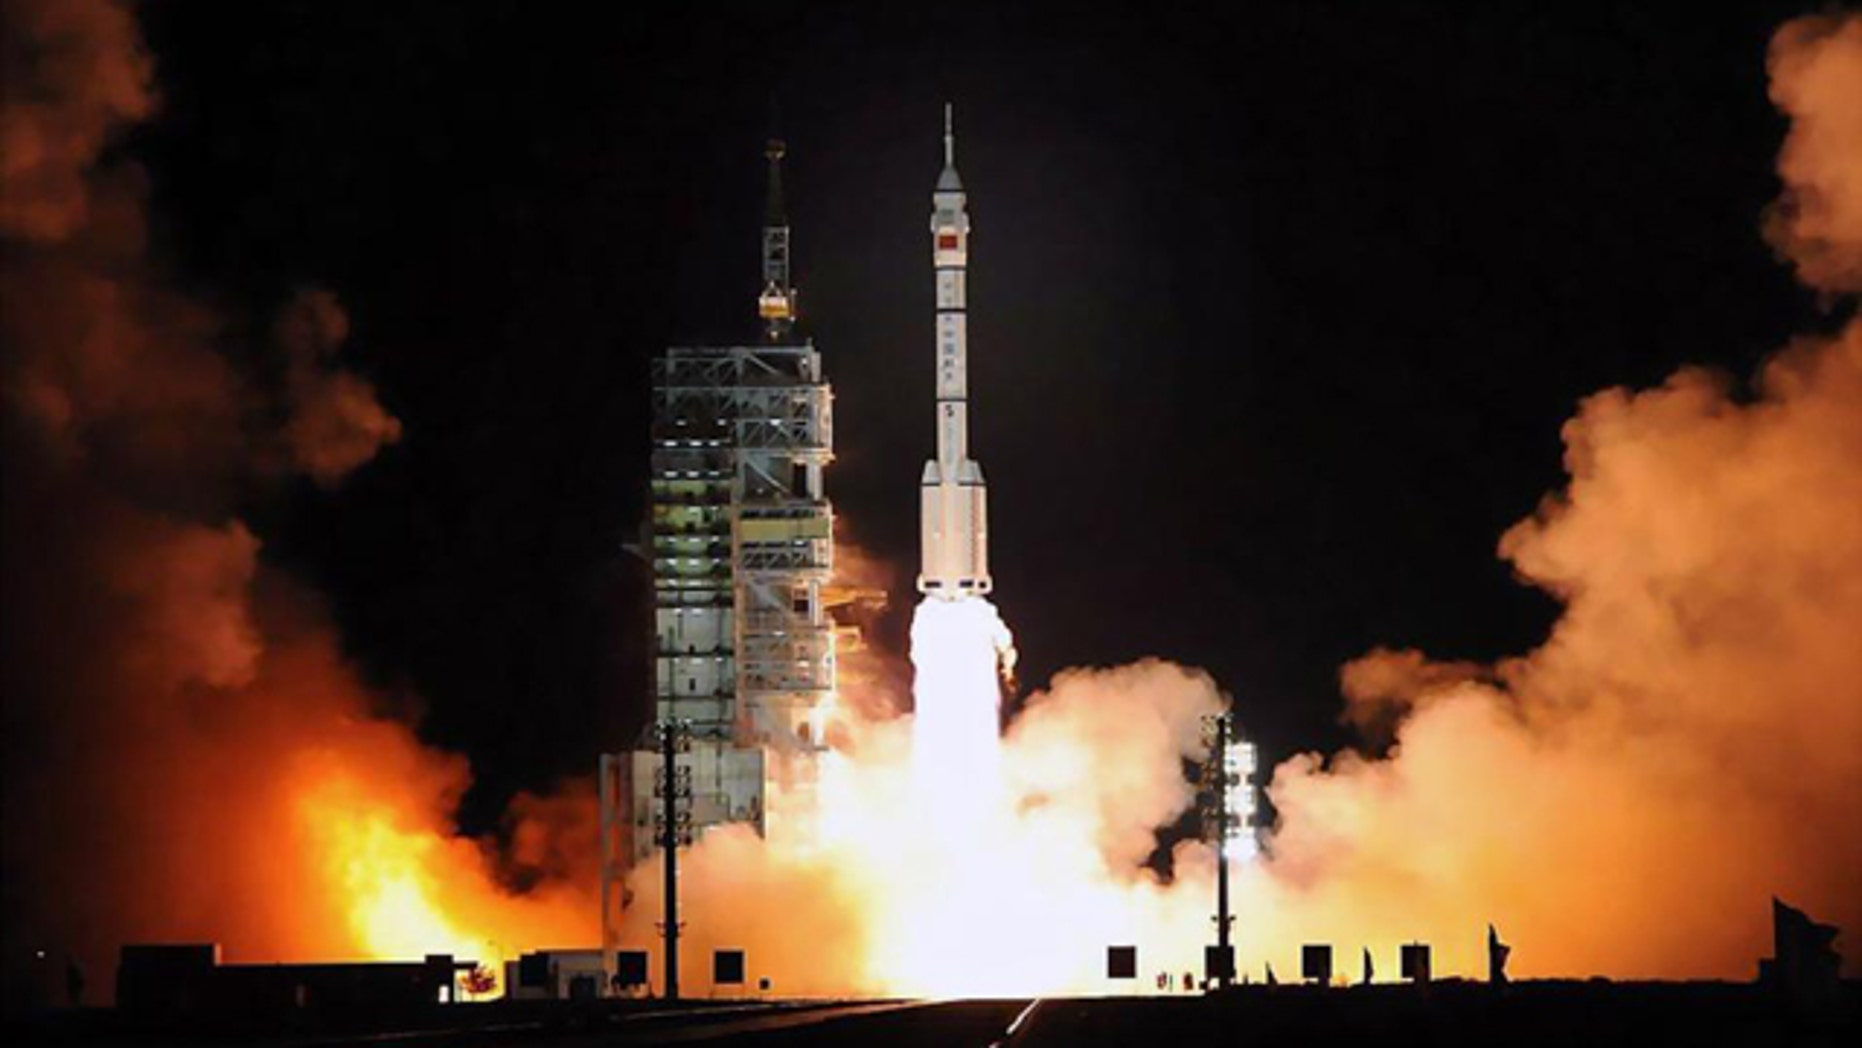 The launch of China's Shenzhou 7 at Jiuquan Satellite Launch Center on September 25, 2008.